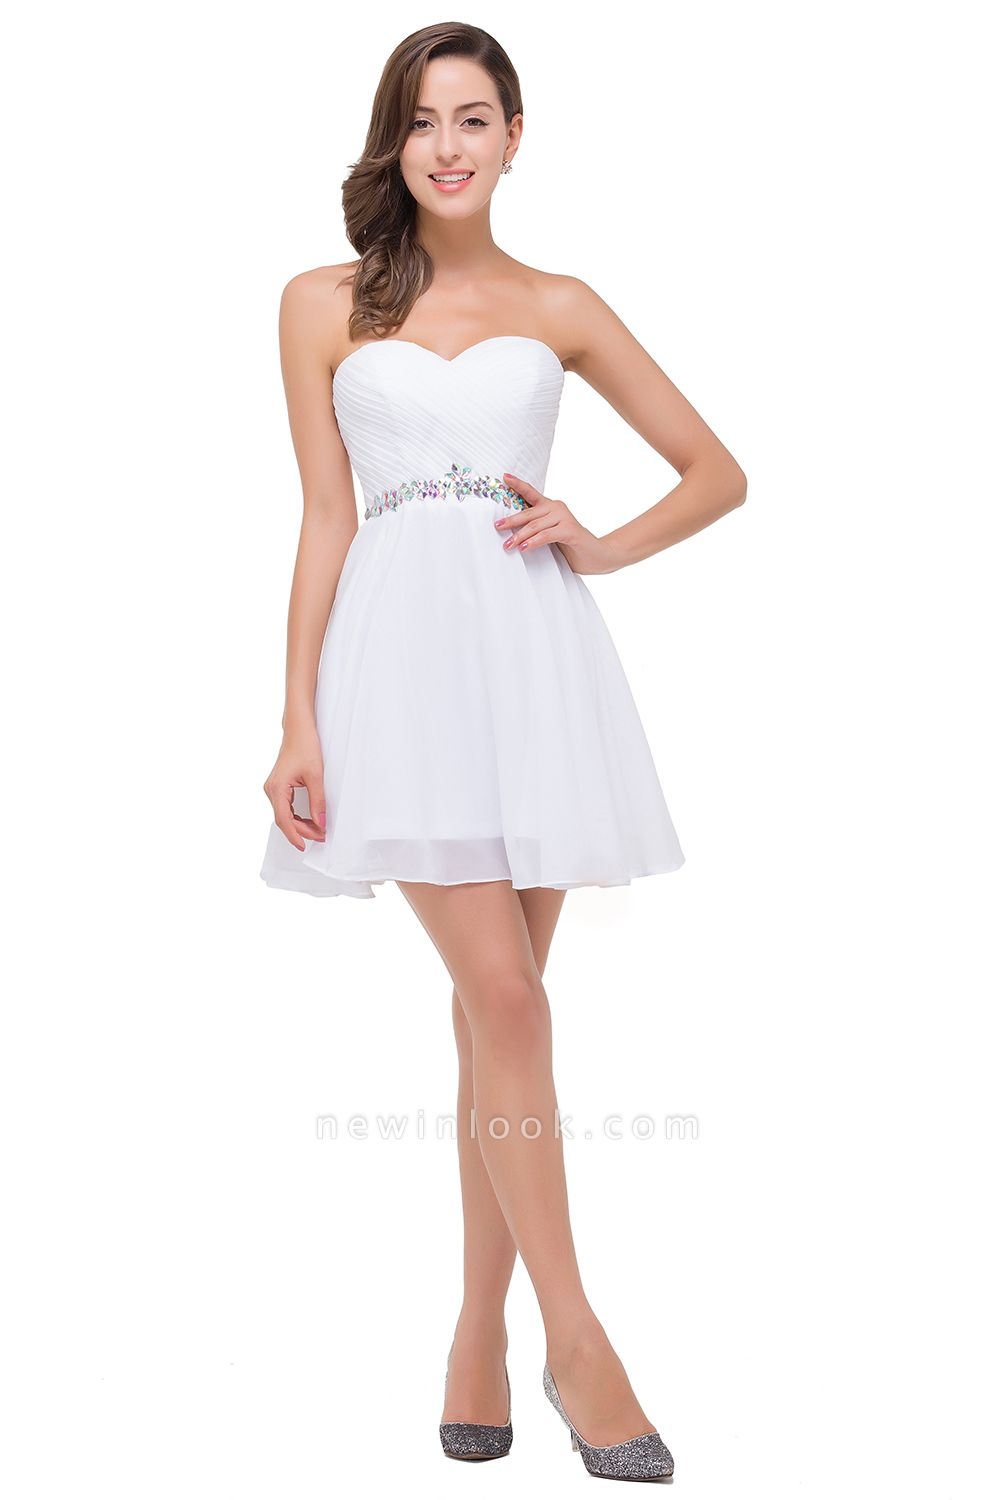 EMILEE | Quinceanera Sweetheart Short Dama Dresses with Beadings